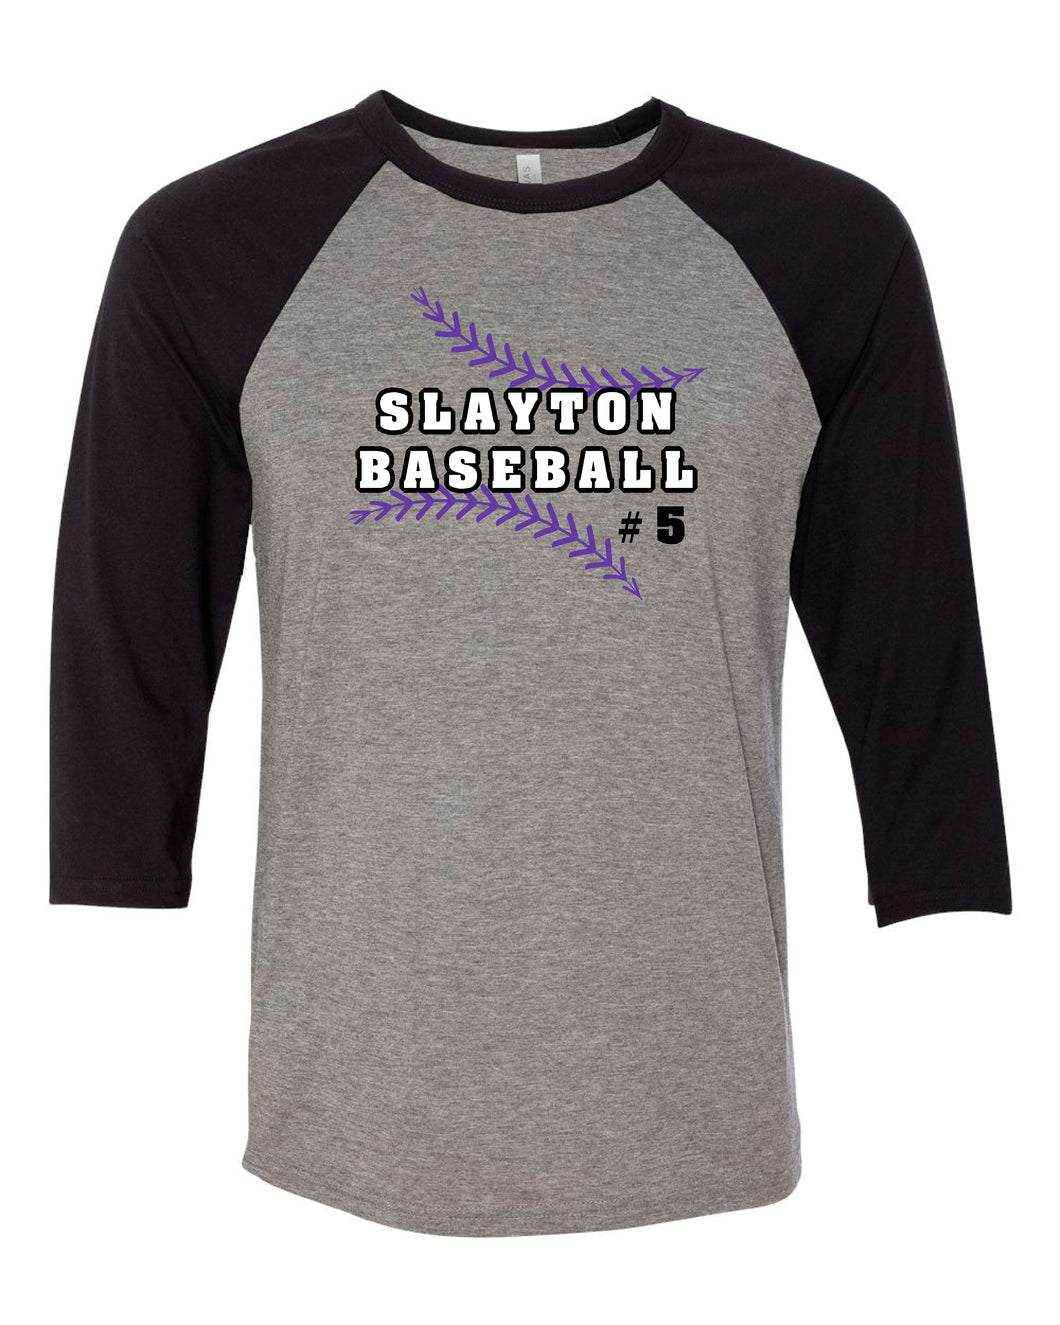 Slayton Baseball Bella Raglan 3/4 Sleeve